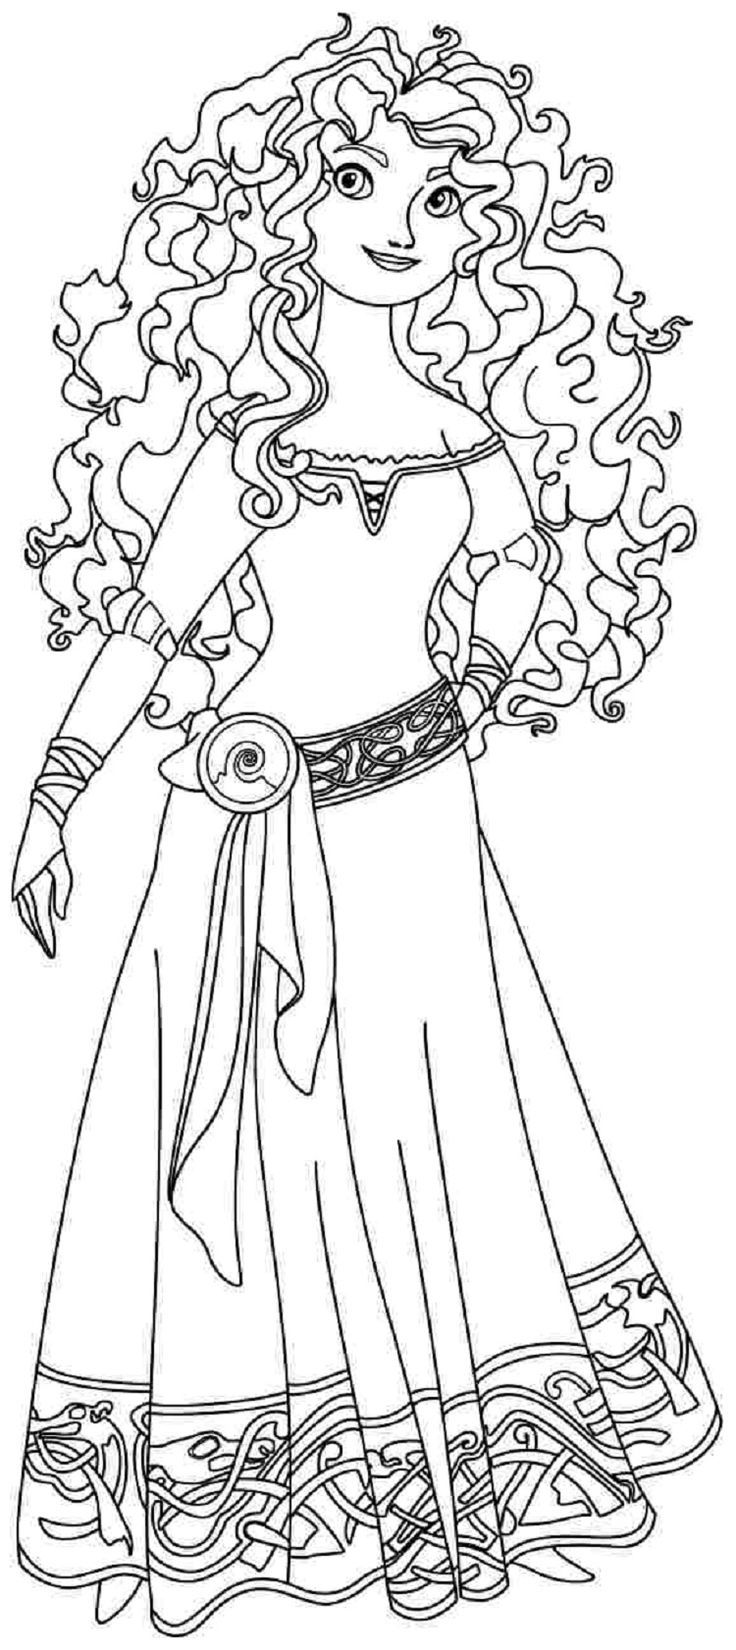 disney princess coloring pages merida | Adult Coloring Books + Pages ...